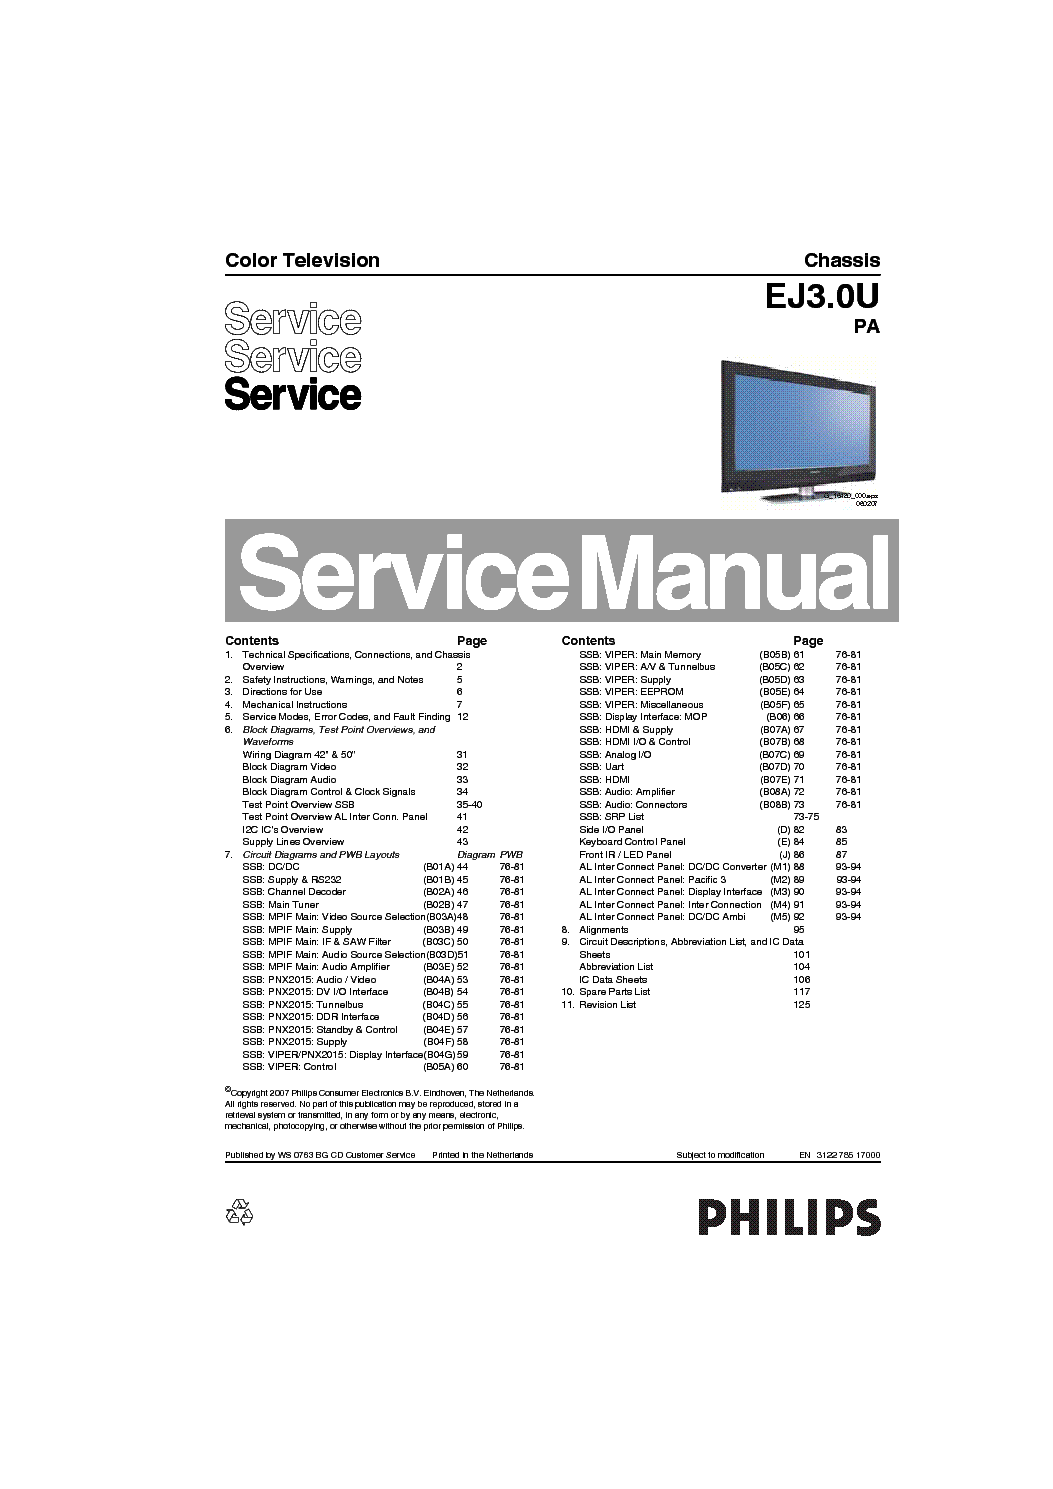 PHILIPS CHASSIS EJ3.0U-PA SM service manual